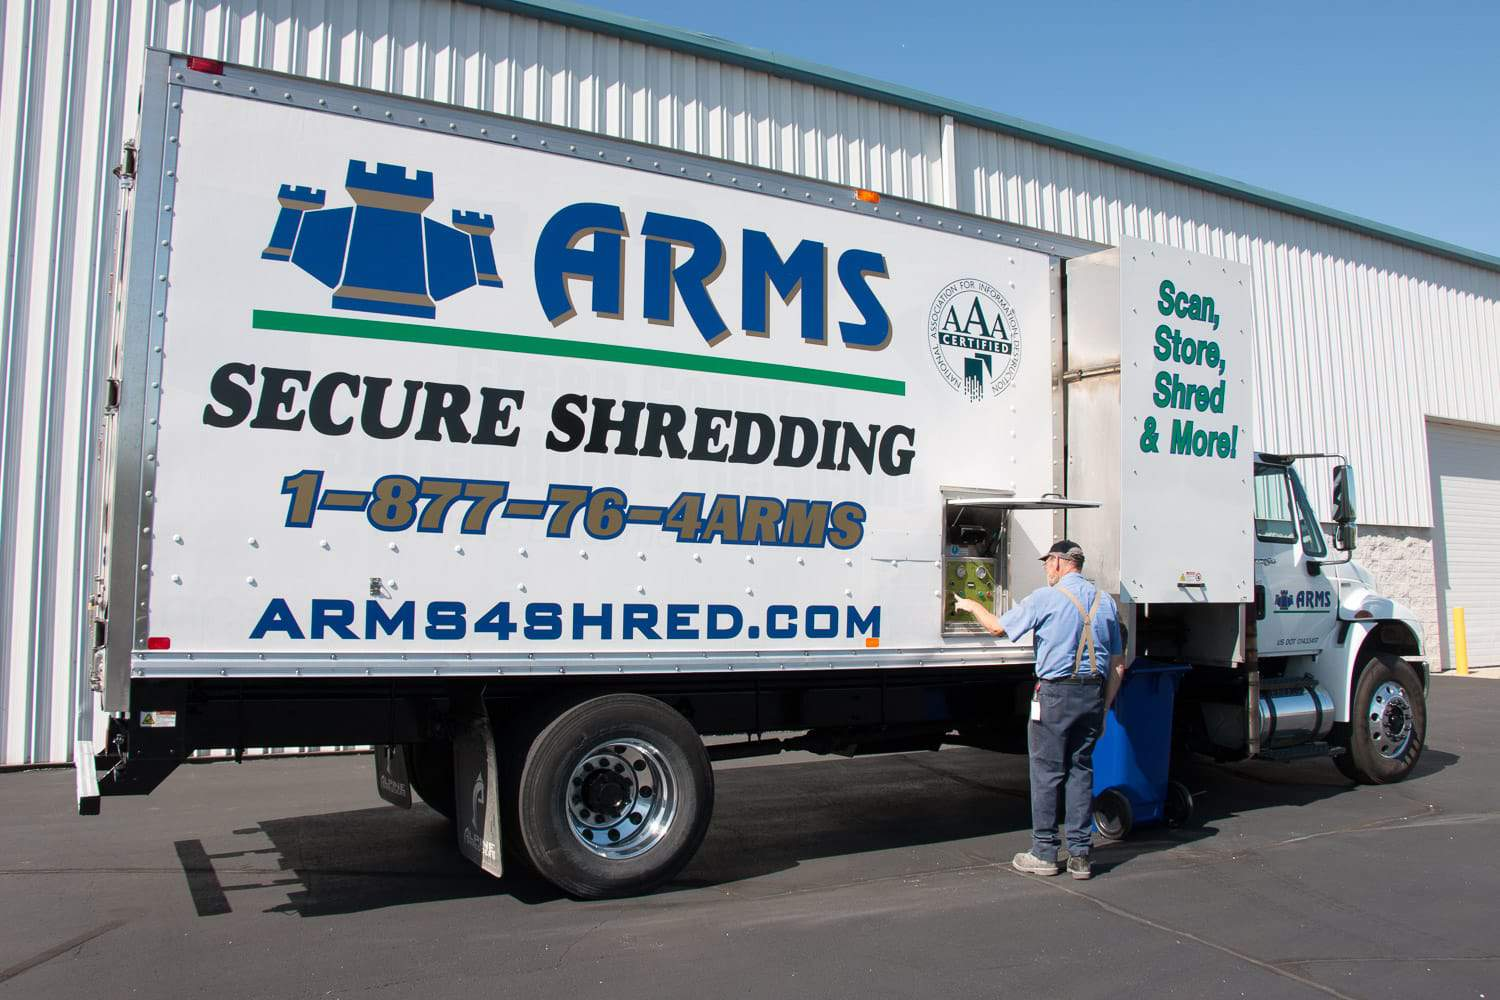 Secure Document Shredding Provides Companies With Peace of Mind